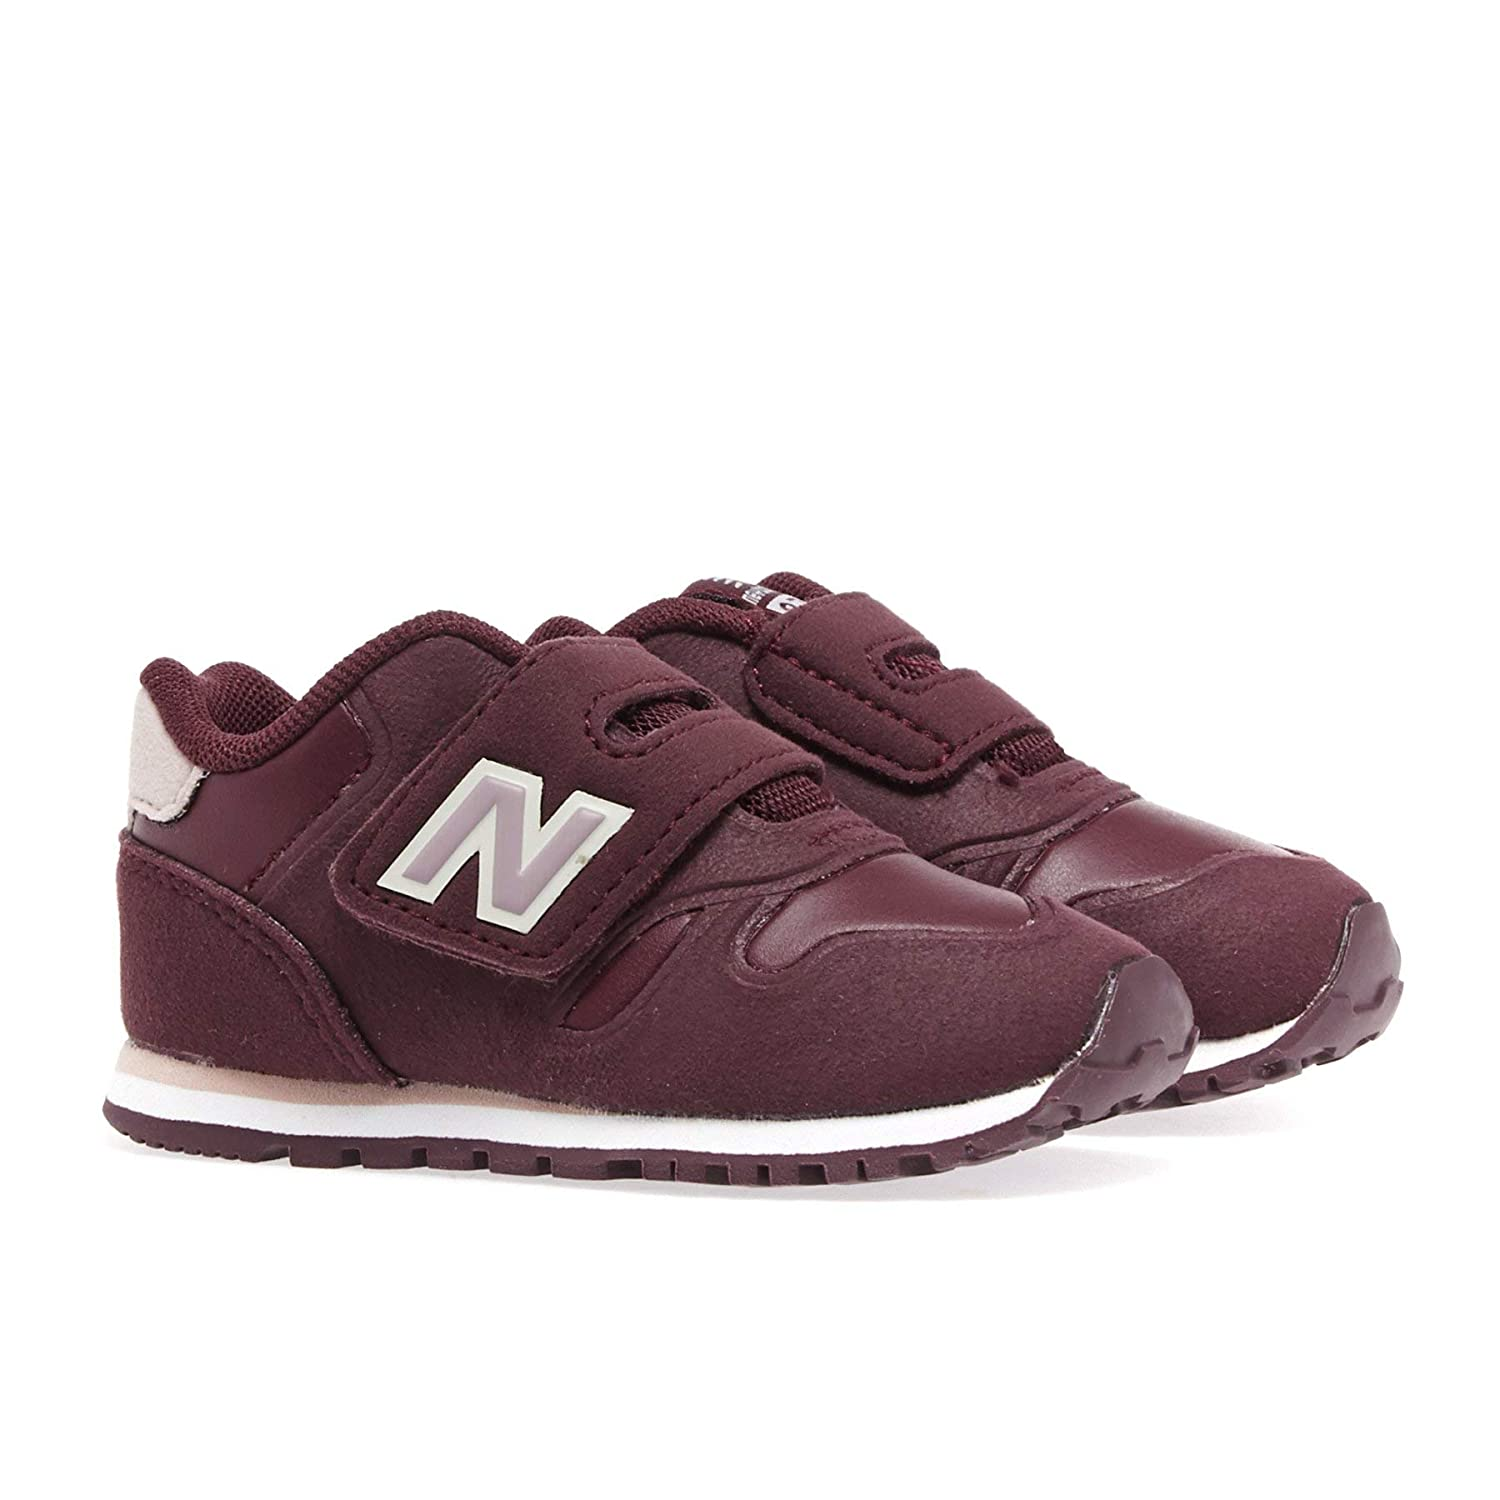 new product 03824 5bcd8 New Balance Infant 373 Velcro Kids Shoes UK 4.5 (Toddler ...